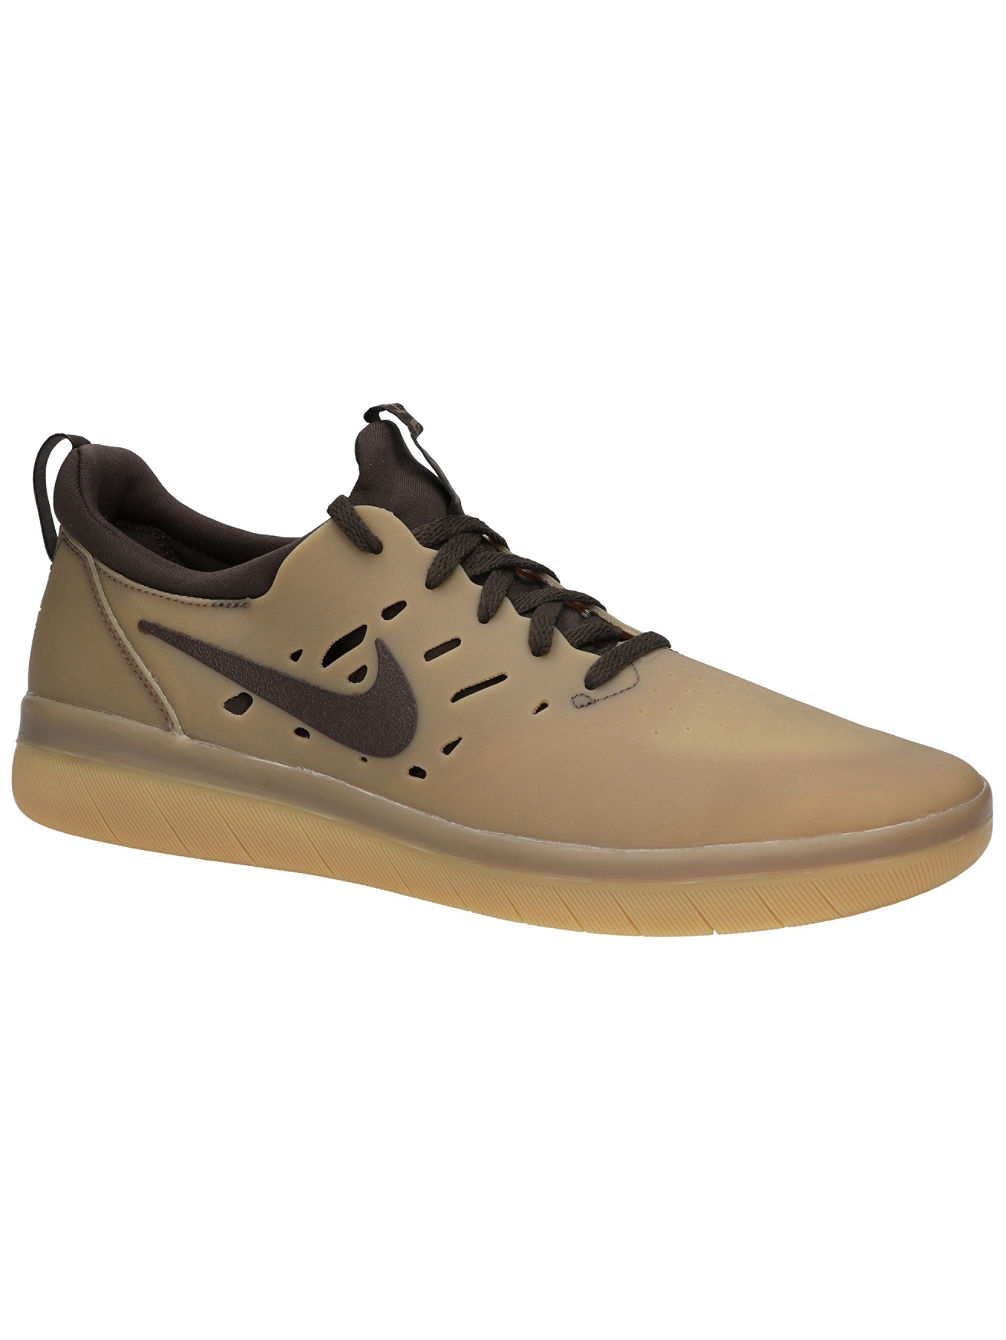 f0cb0241ac19af Buy Nike Nyjah Free Skate Shoes online at blue-tomato.com